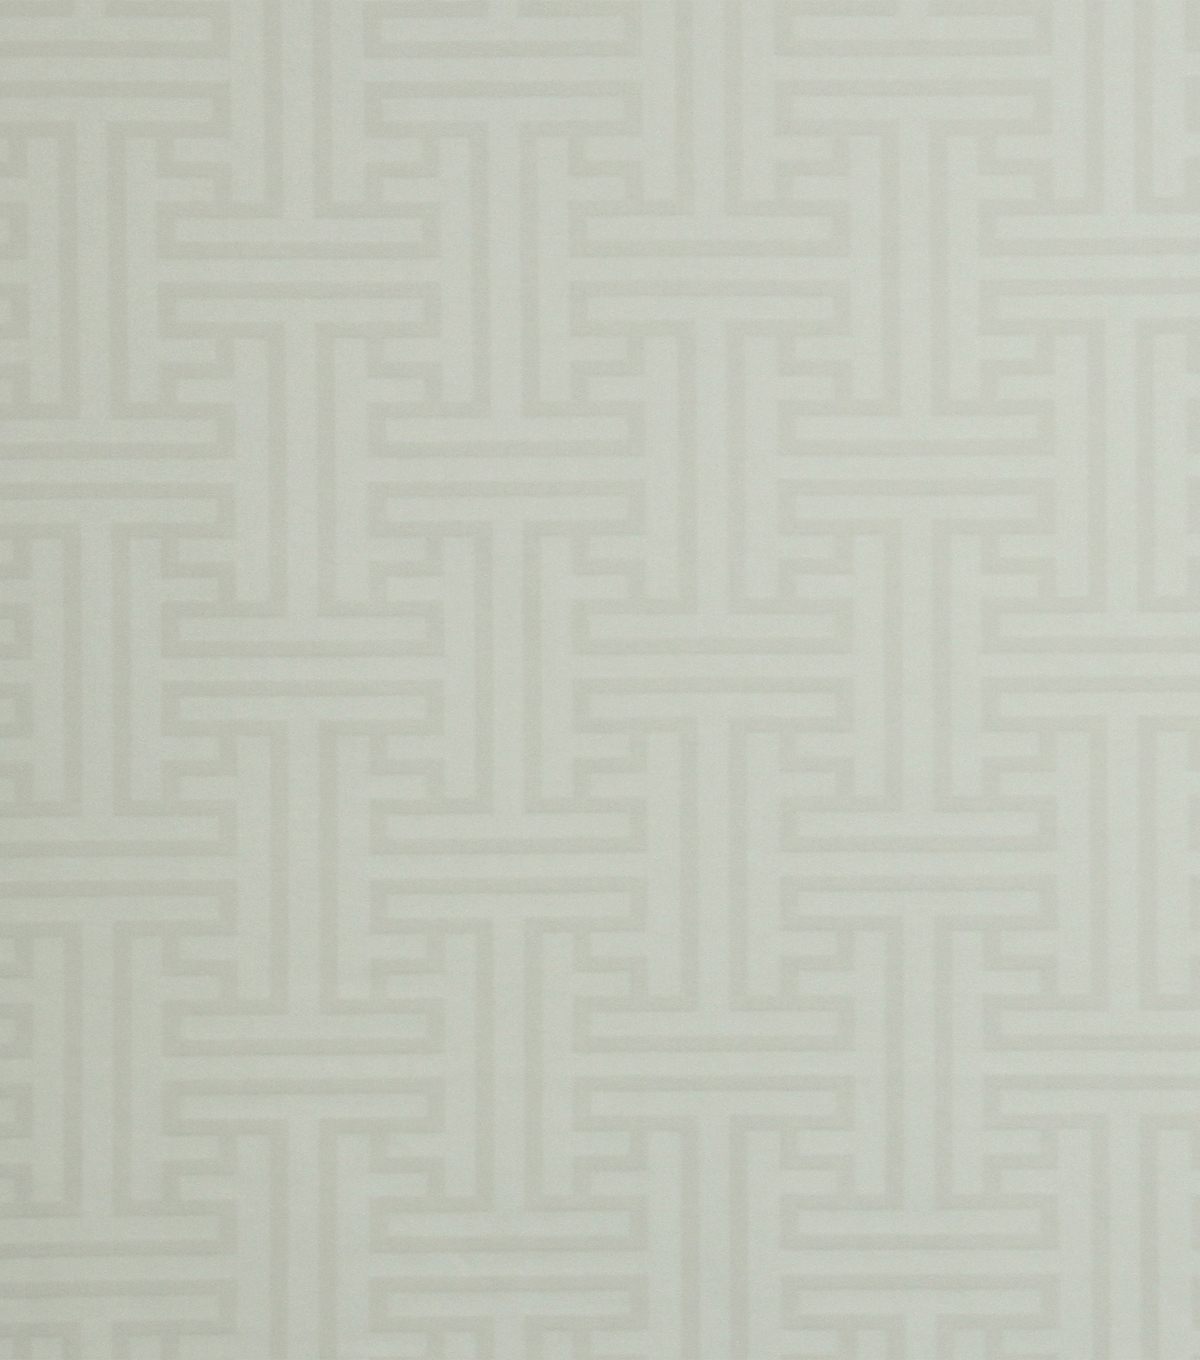 Home Decor 8\u0022x8\u0022 Fabric Swatch-Robert Allen Geo Damask White